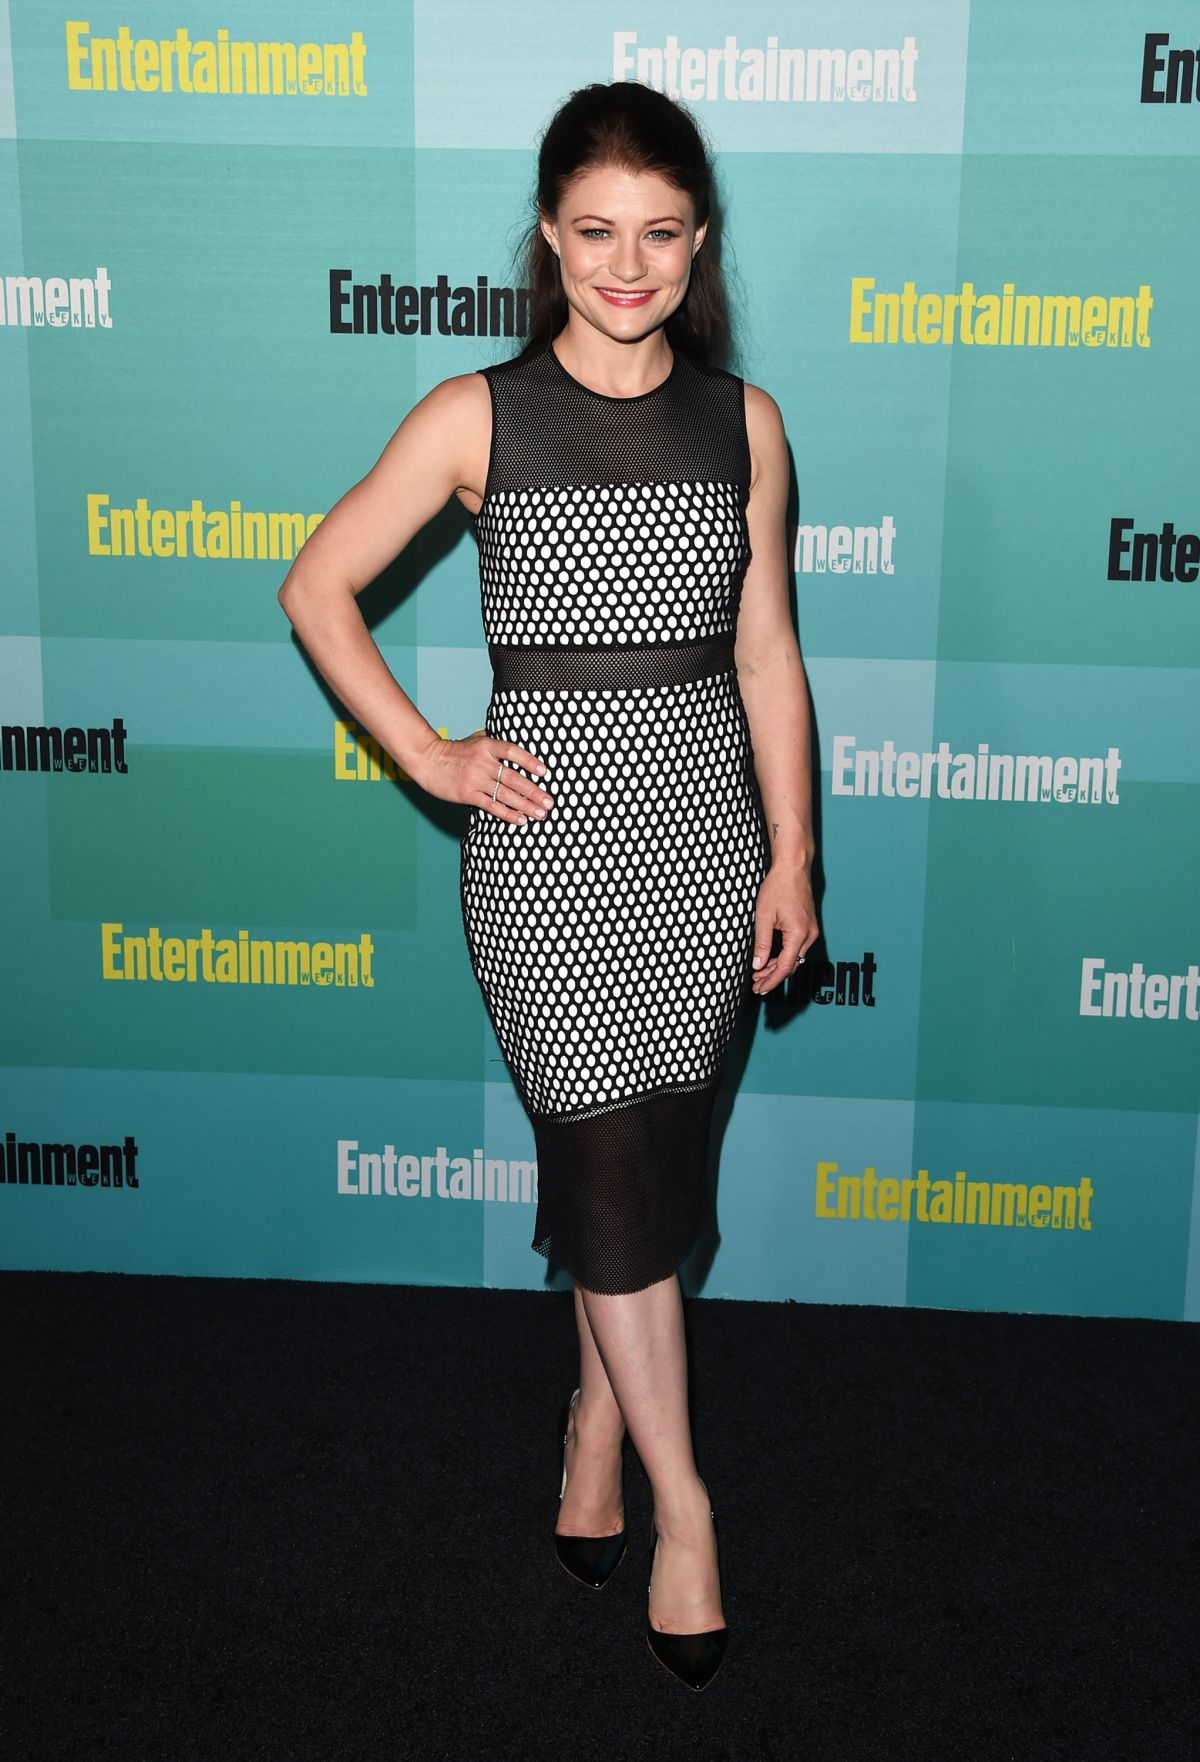 EMILIE DE RAVIN at Entertainment Weekly Party at Comic-con in San Diego